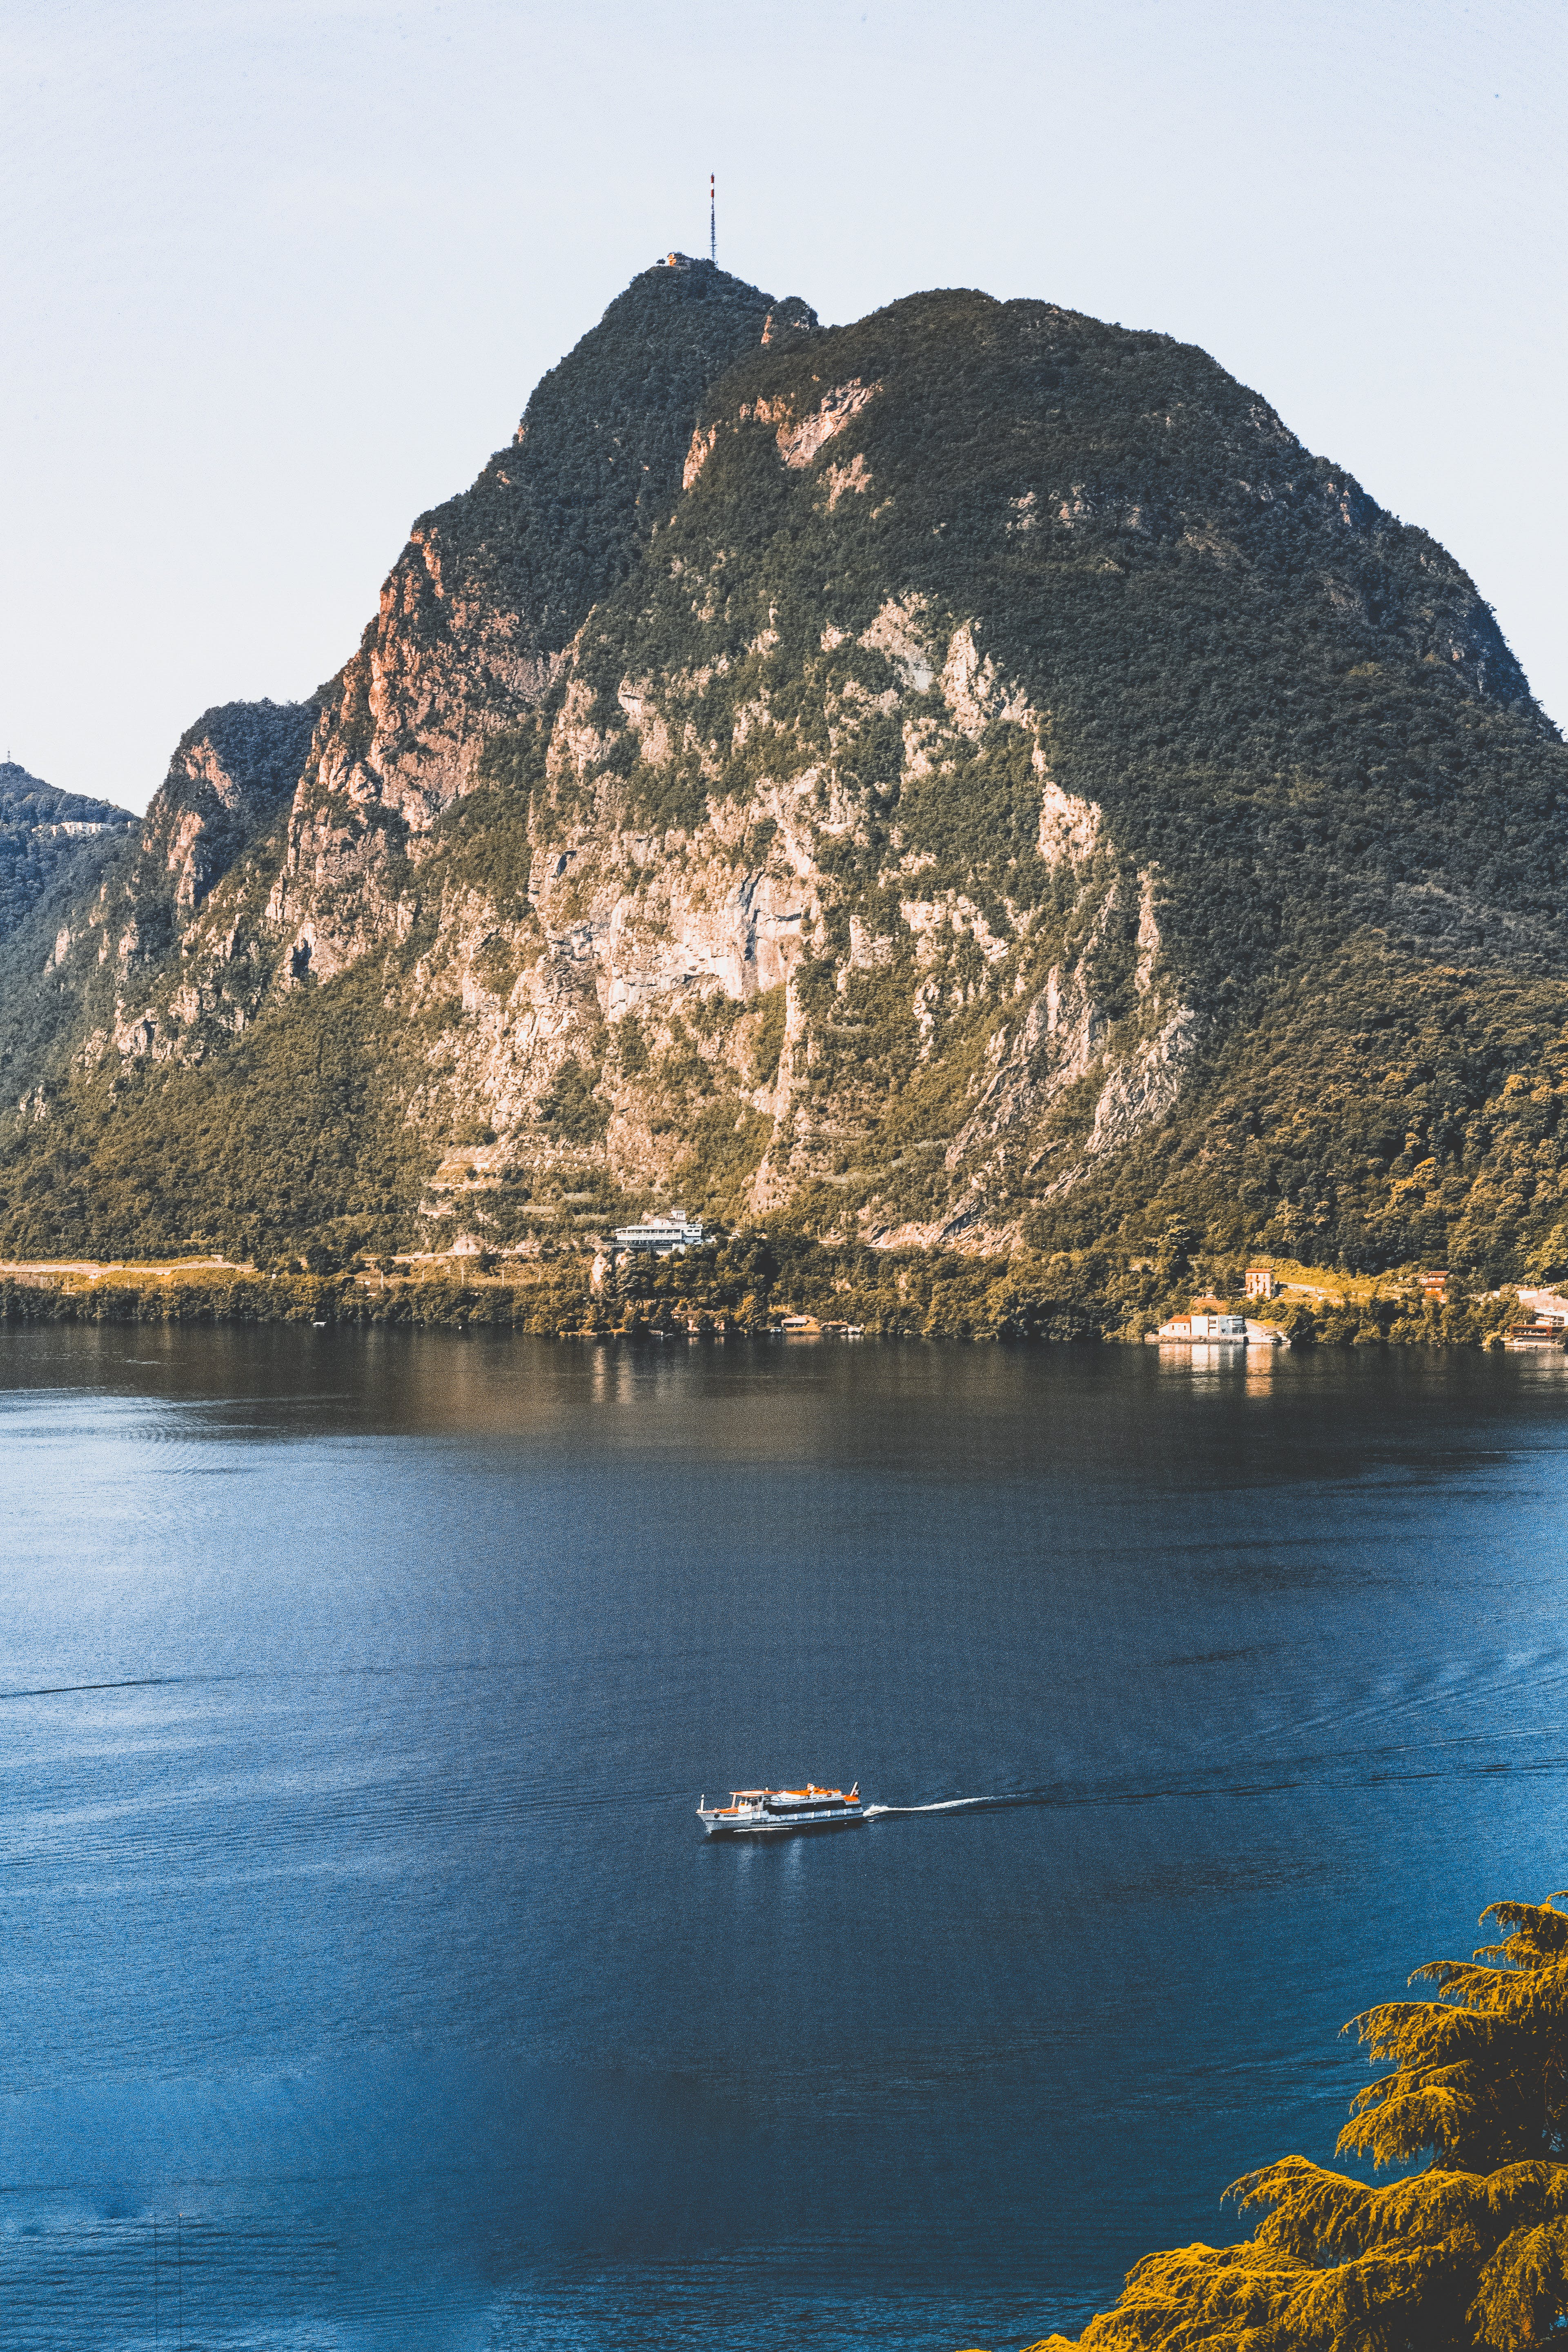 High Angled Photography Of Boat Near Mountain